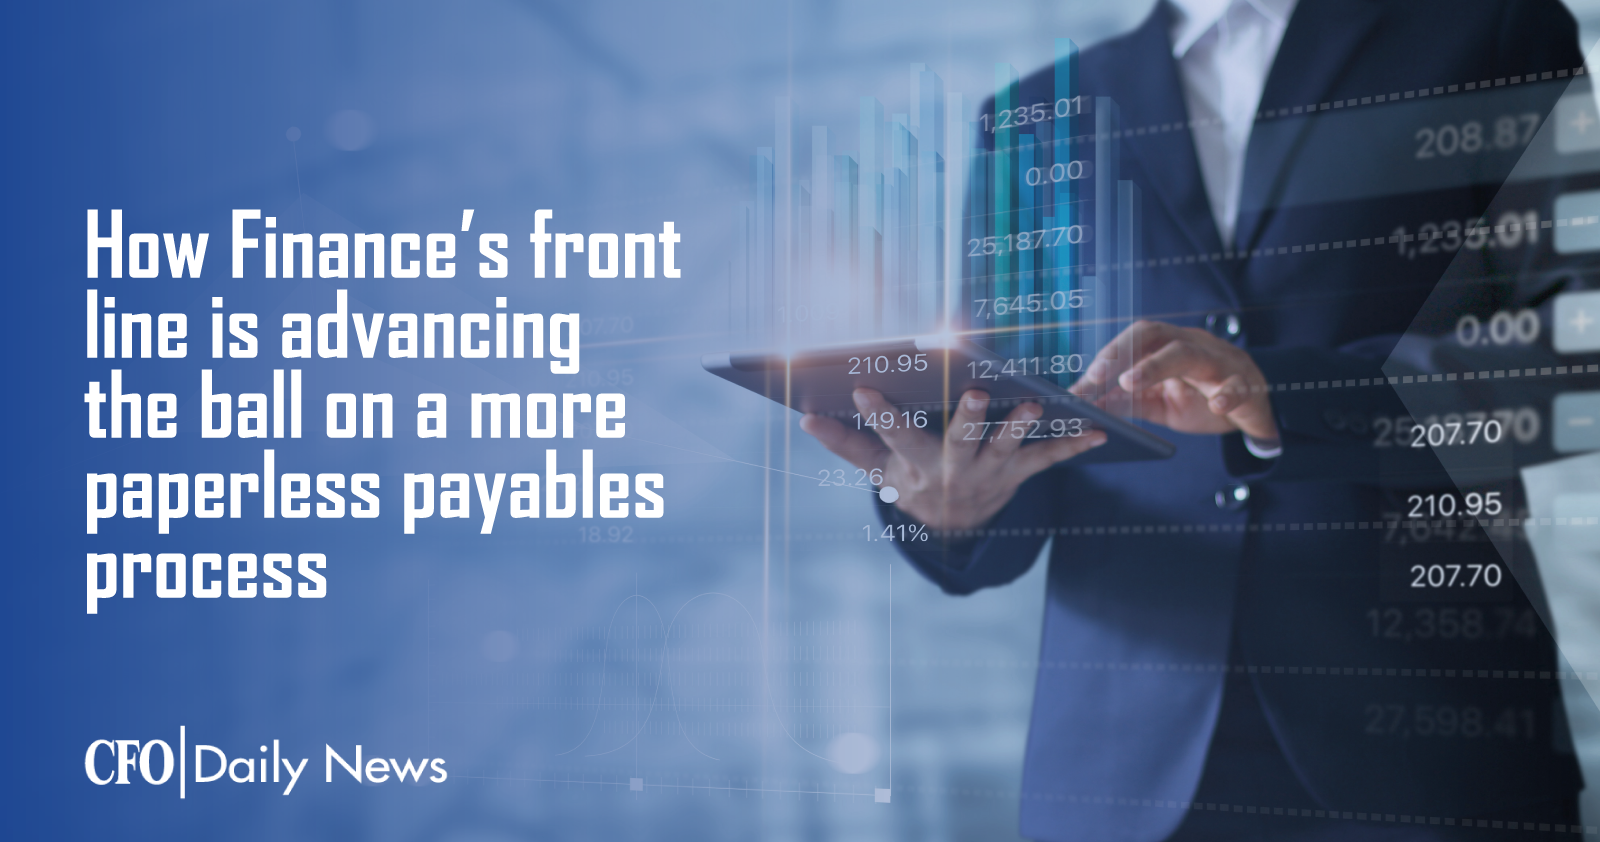 how finances front line is advancing the ball on a more paperless payables process